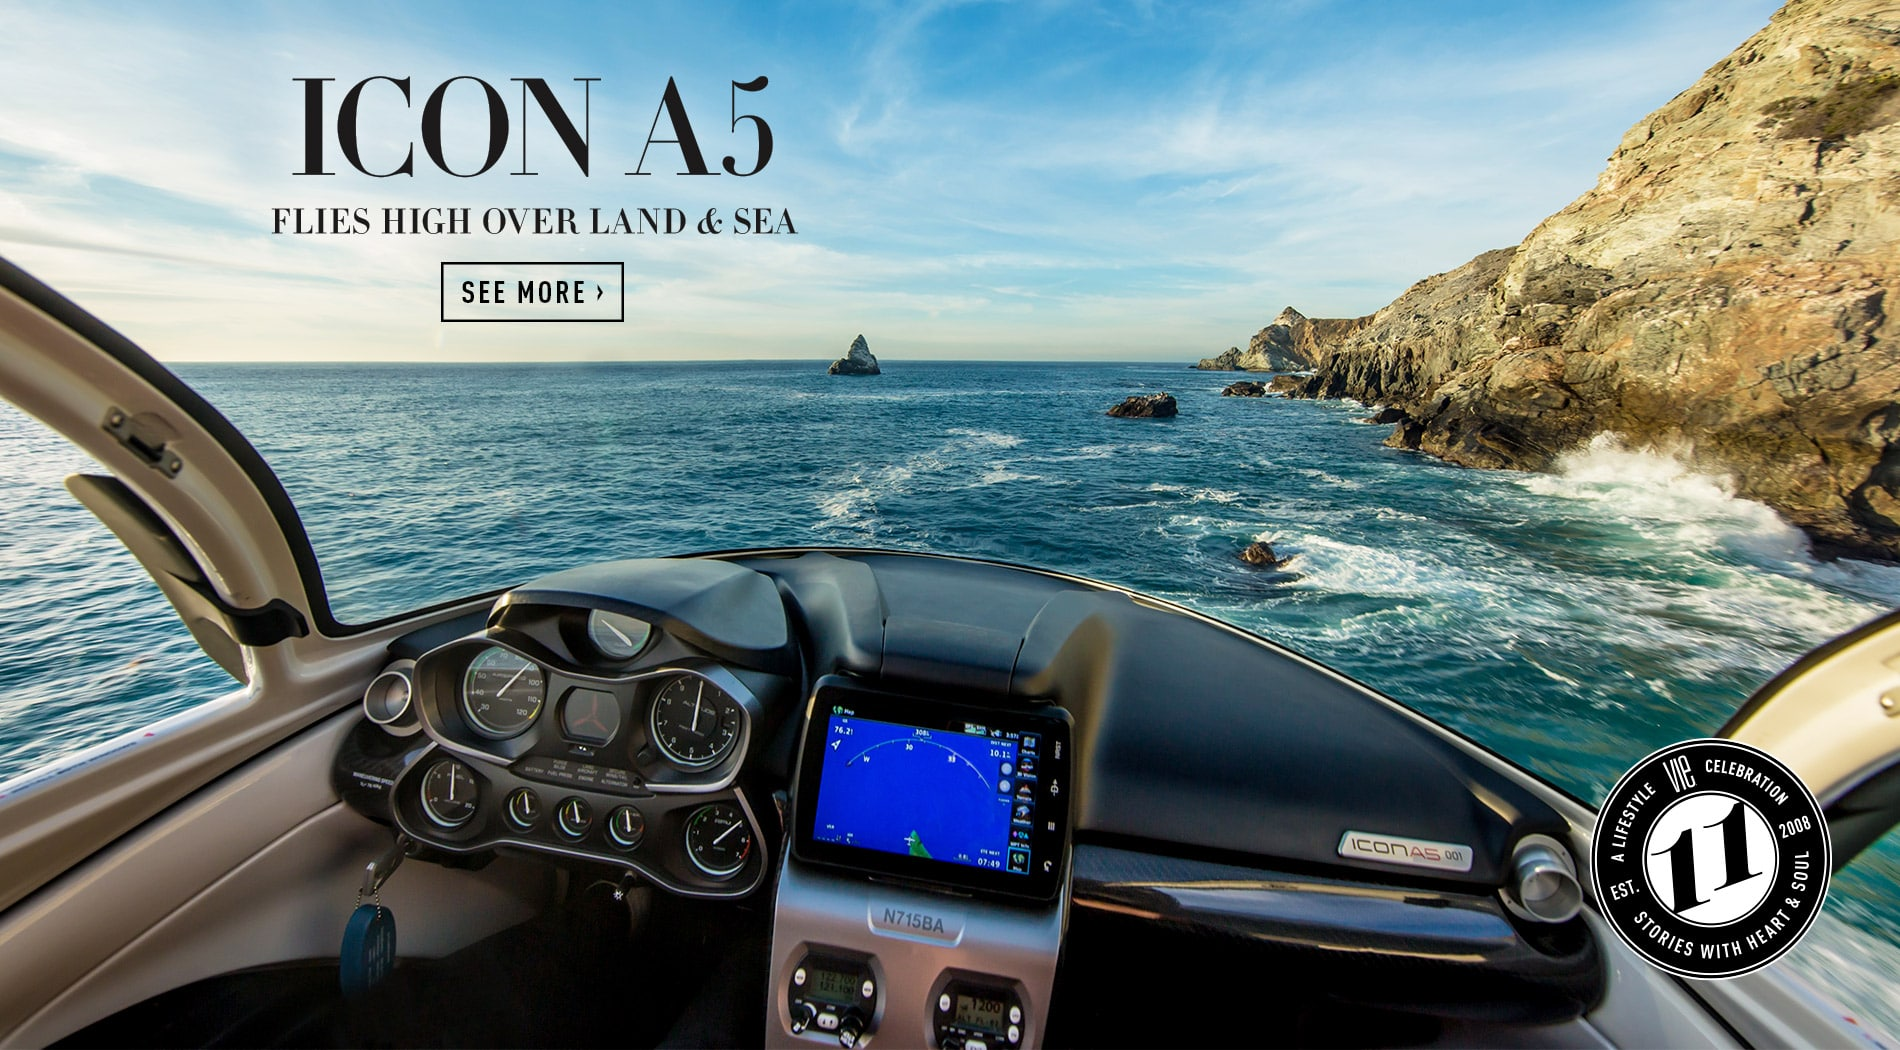 VIE Magazine February 2019 Luxury Homes & Technology Issue - Icon A5